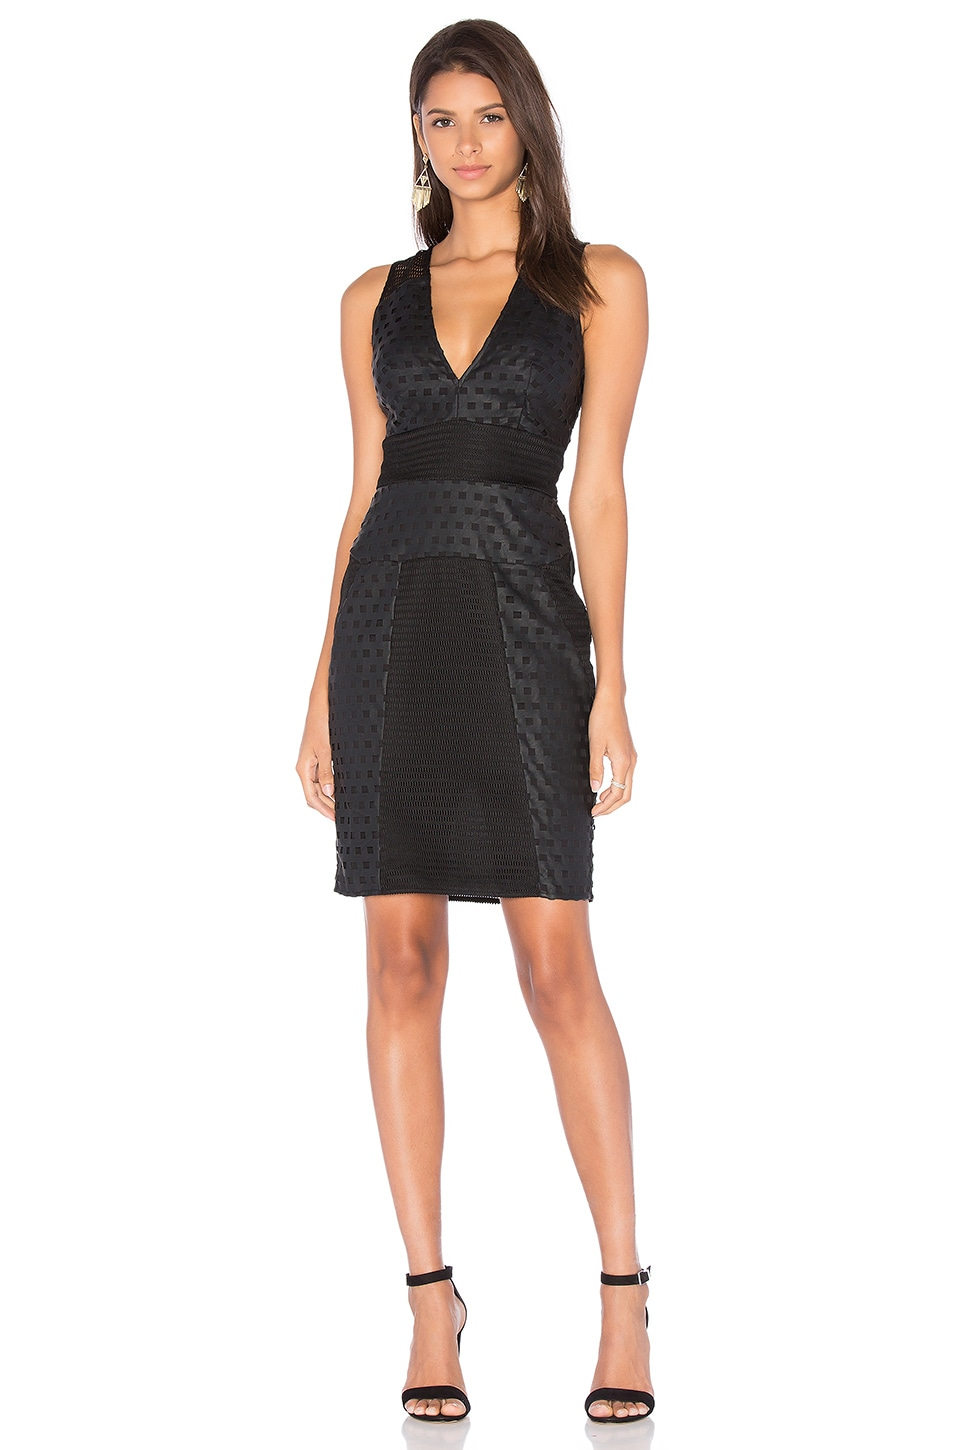 Grid Laser Cut Dress by KENDALL + KYLIE